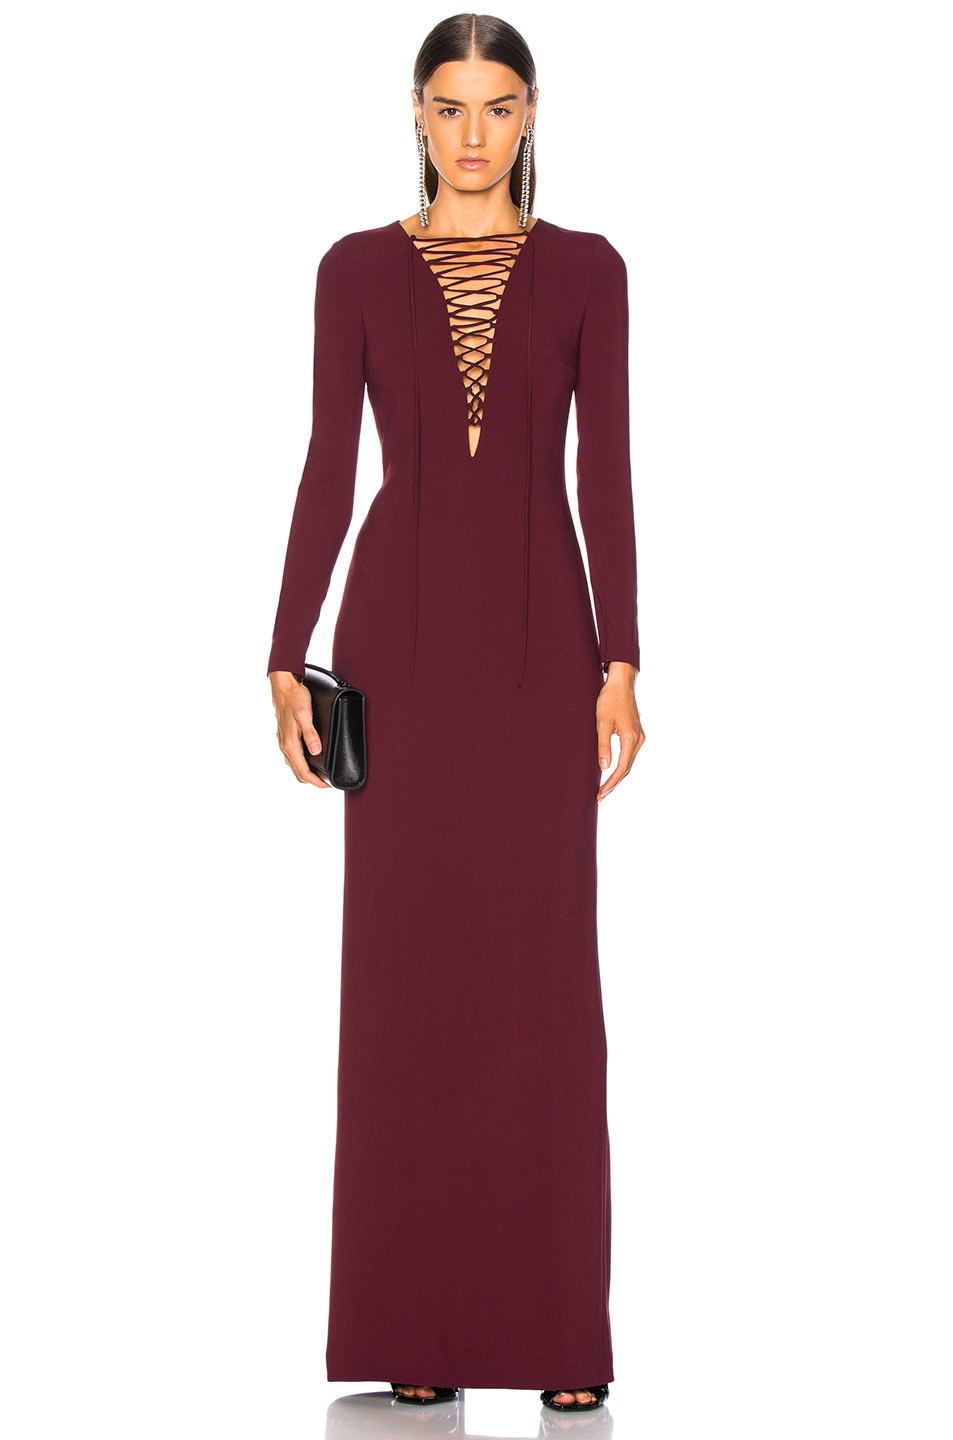 Image 1 of Stella McCartney Lace Up Maxi Dress in Bordeaux